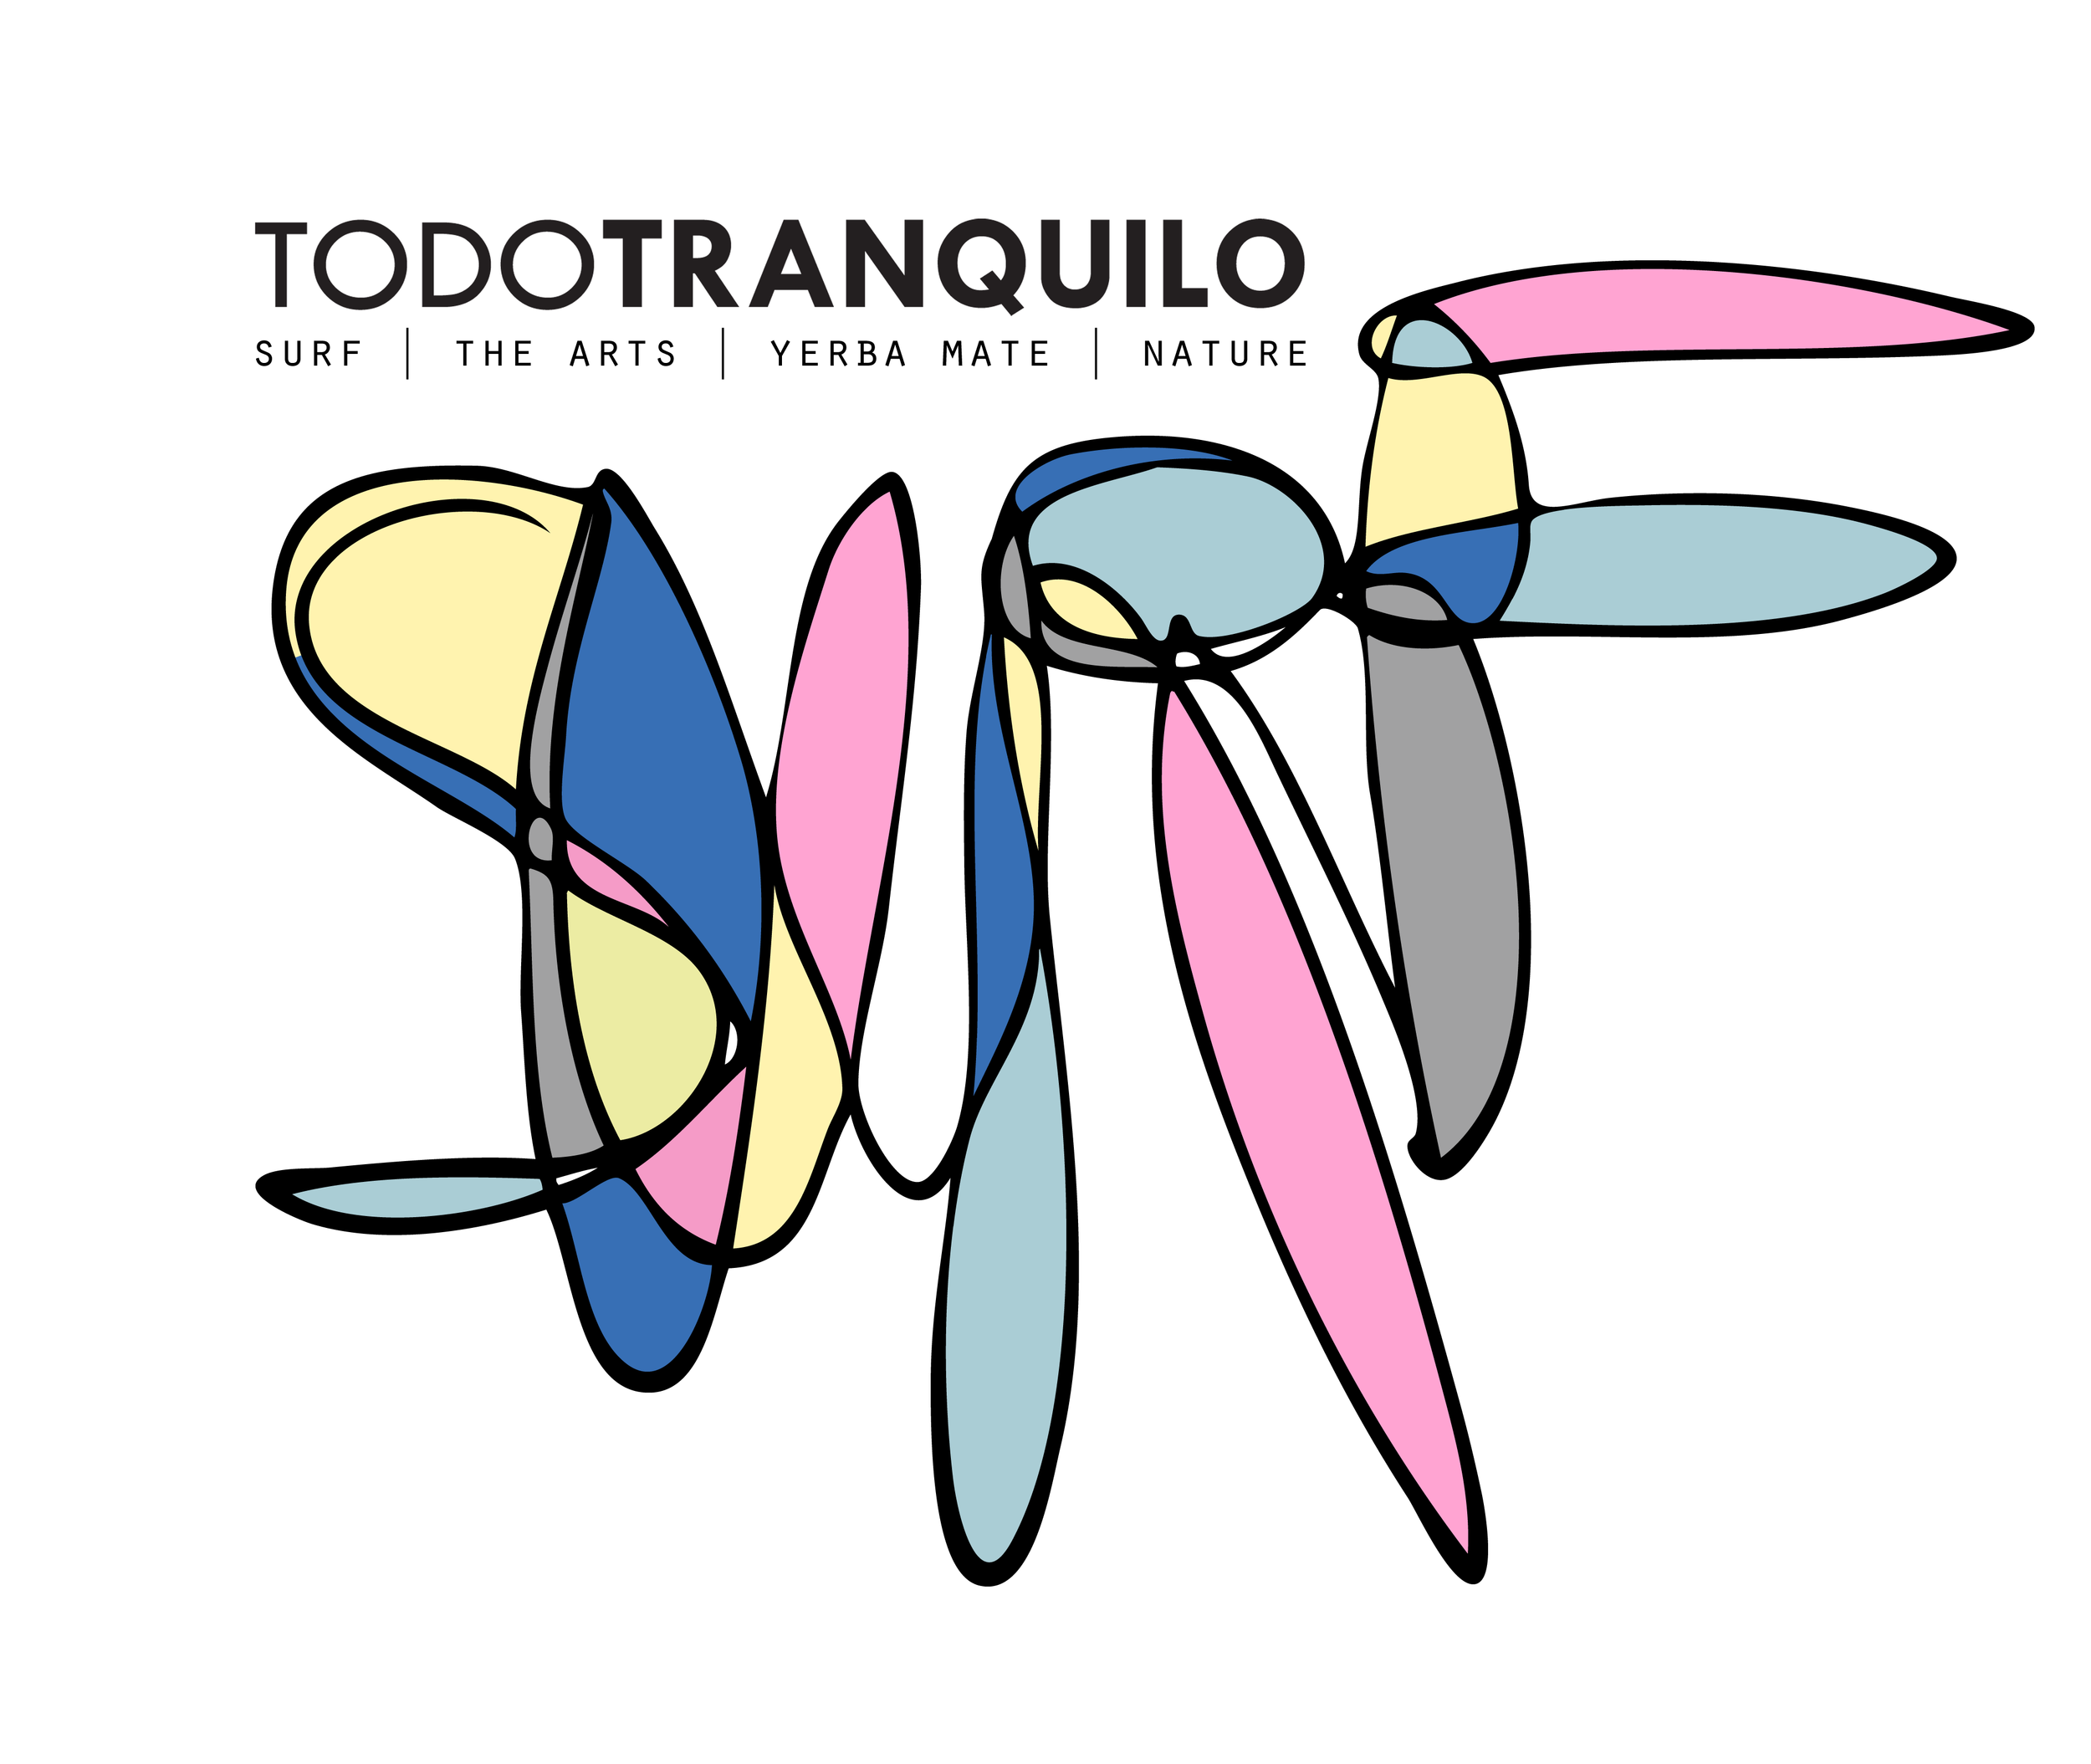 Surf Art - Surf Lifestyle - Todo Tranquilo